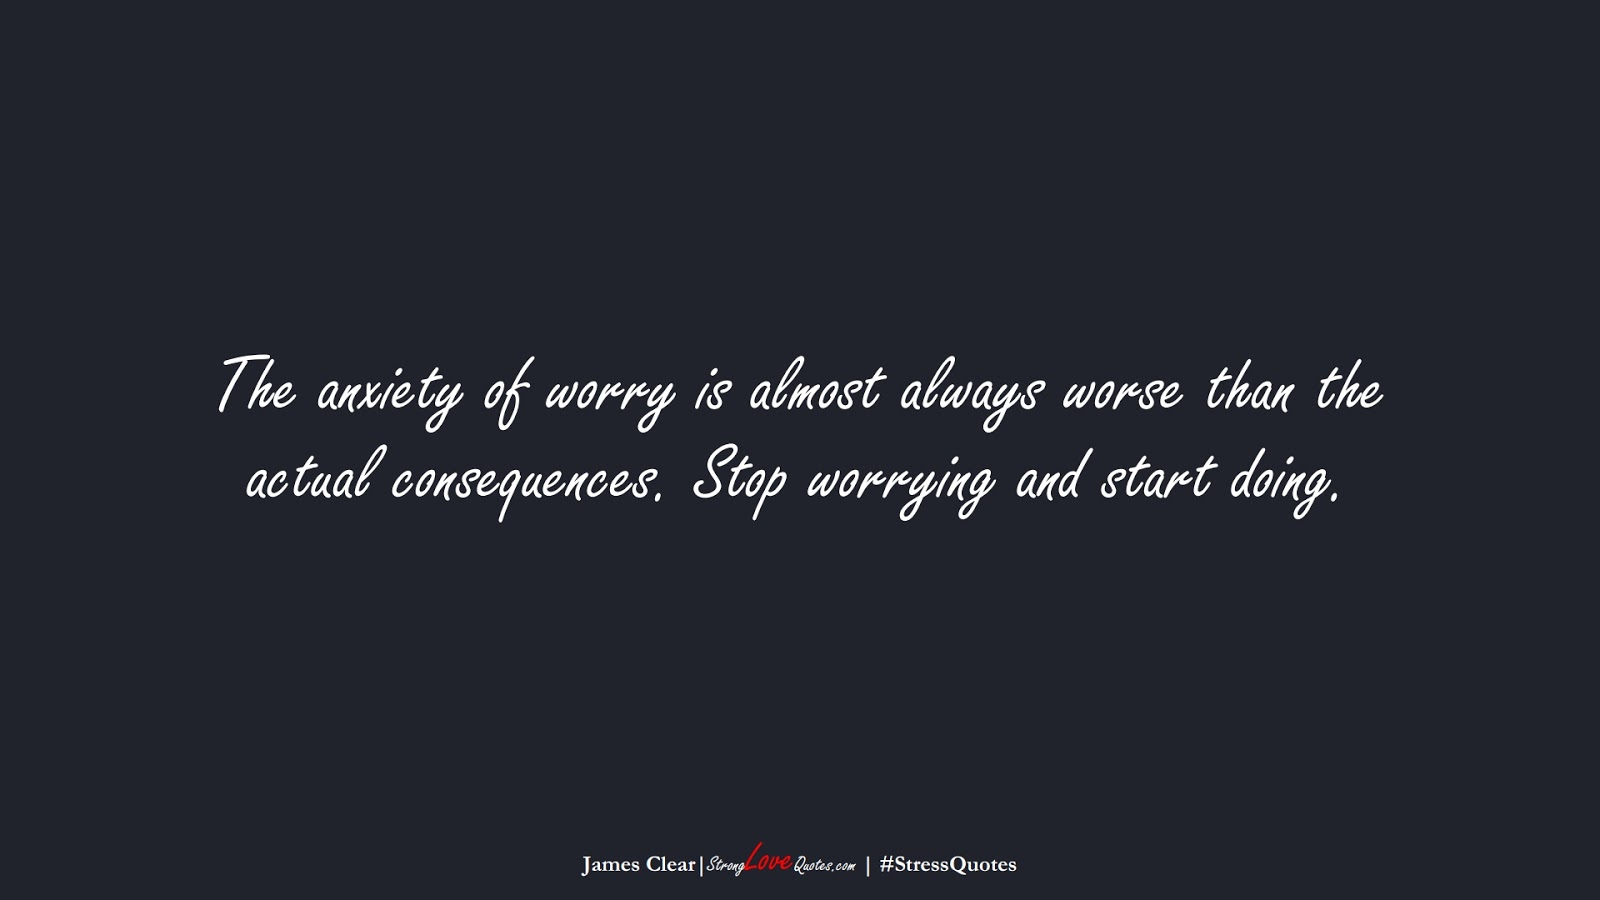 The anxiety of worry is almost always worse than the actual consequences. Stop worrying and start doing. (James Clear);  #StressQuotes